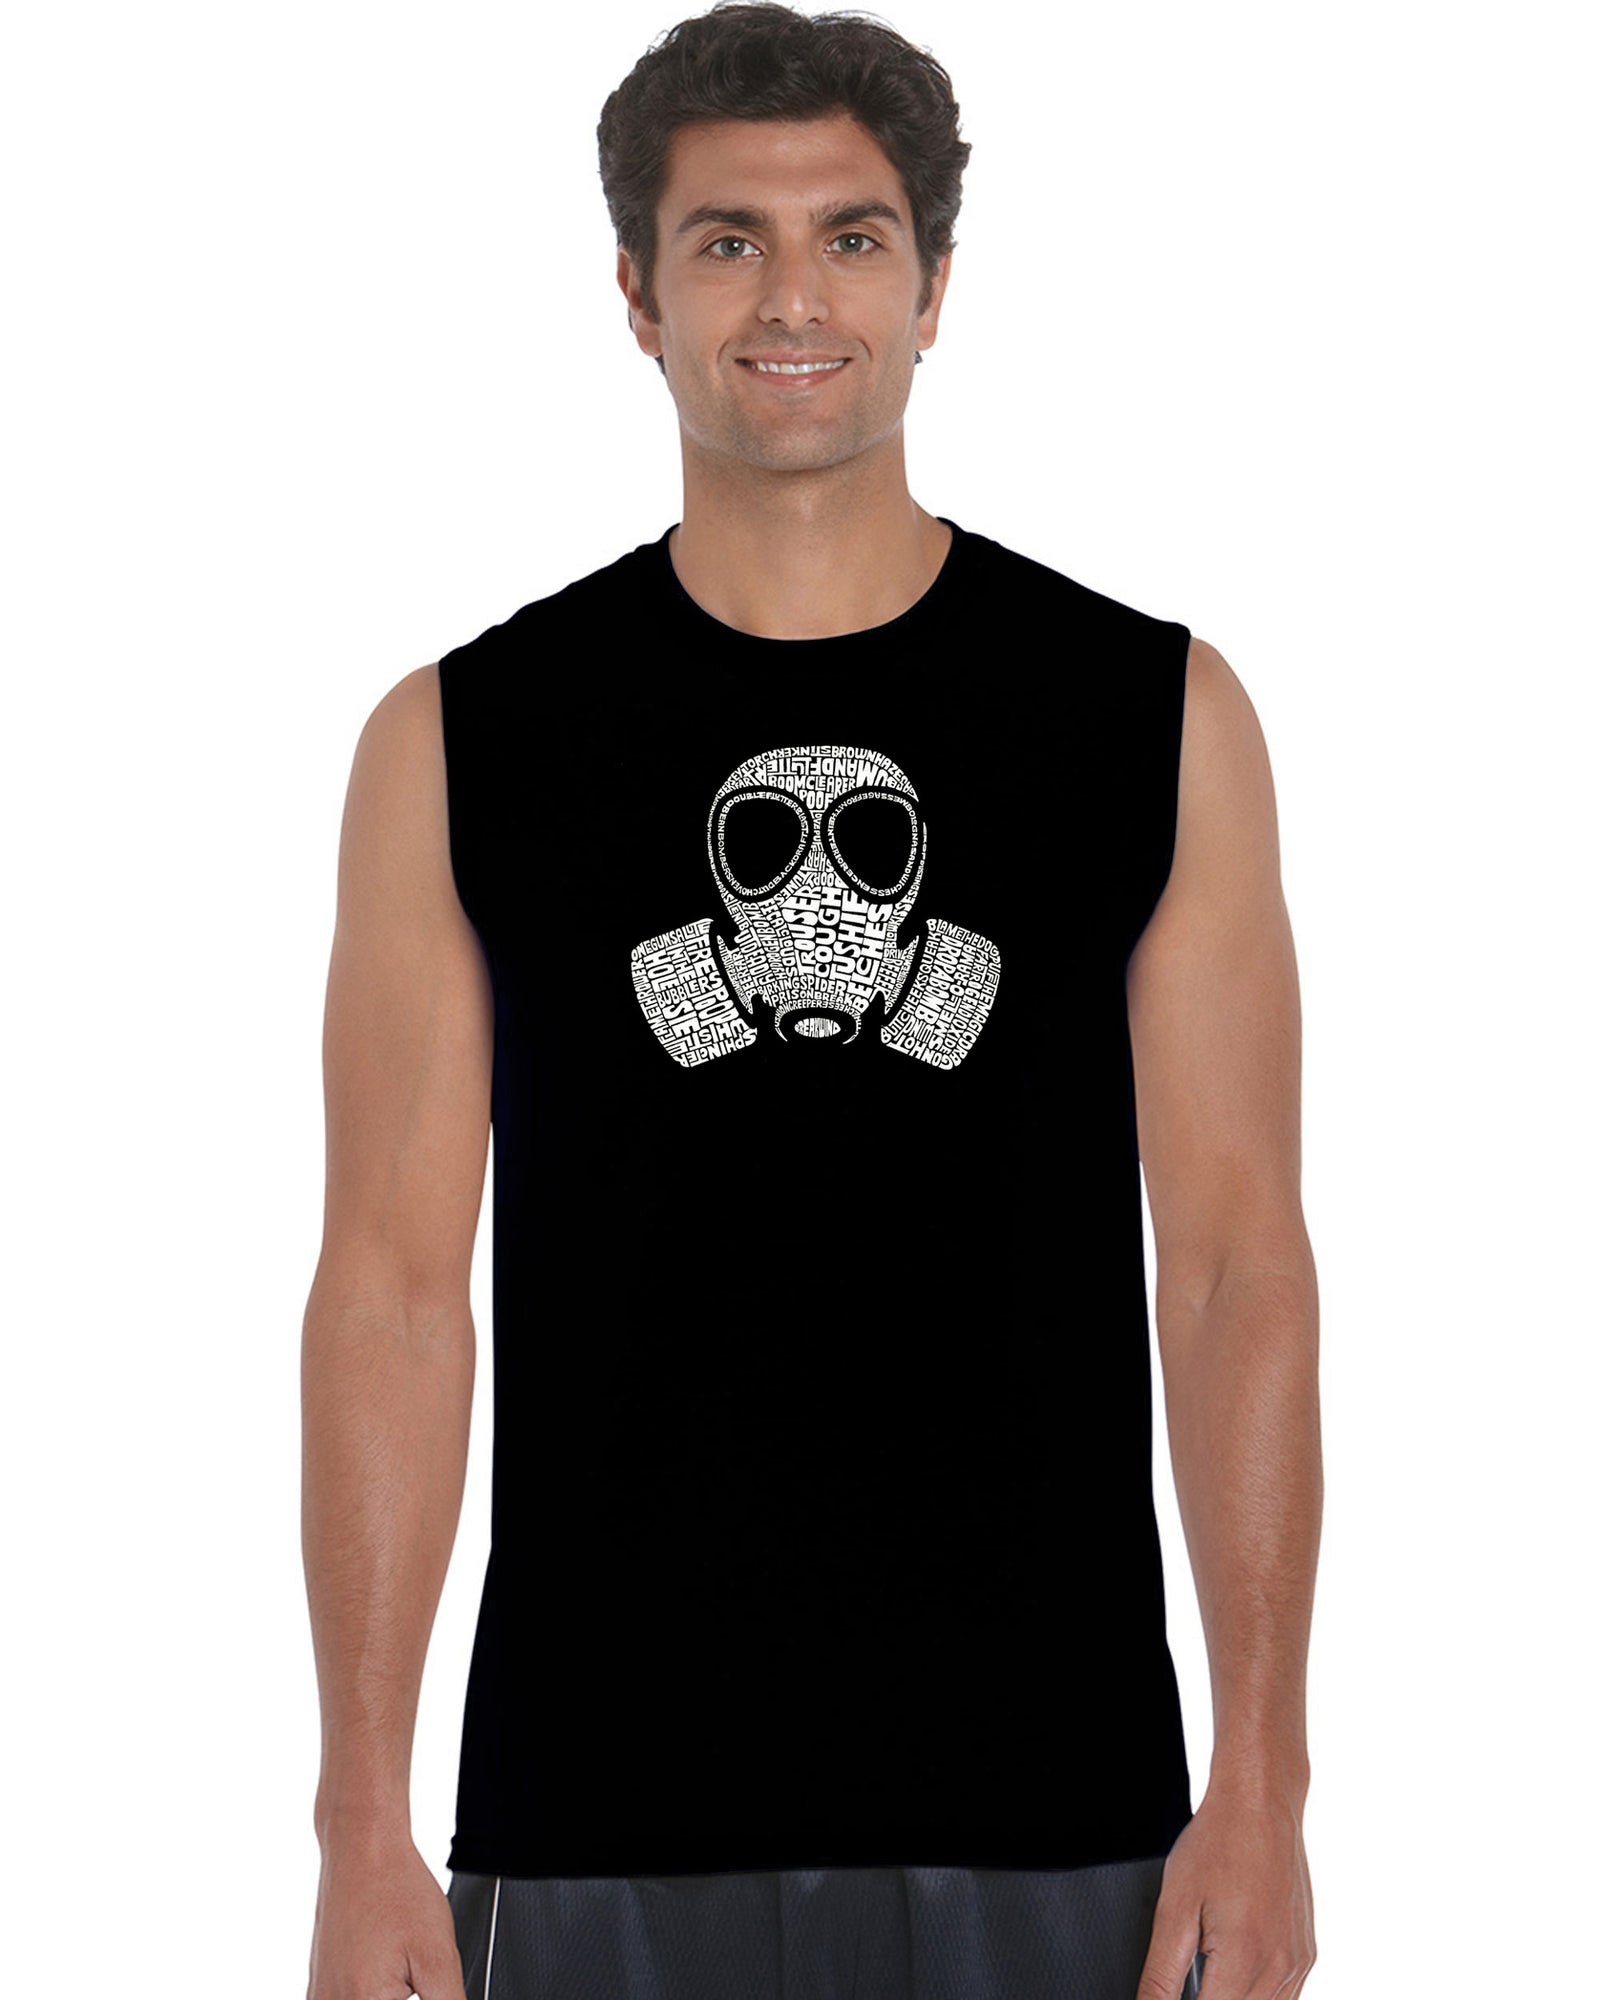 "Men's Sleeveless T-shirt - SLANG TERM FOR ""FART"""